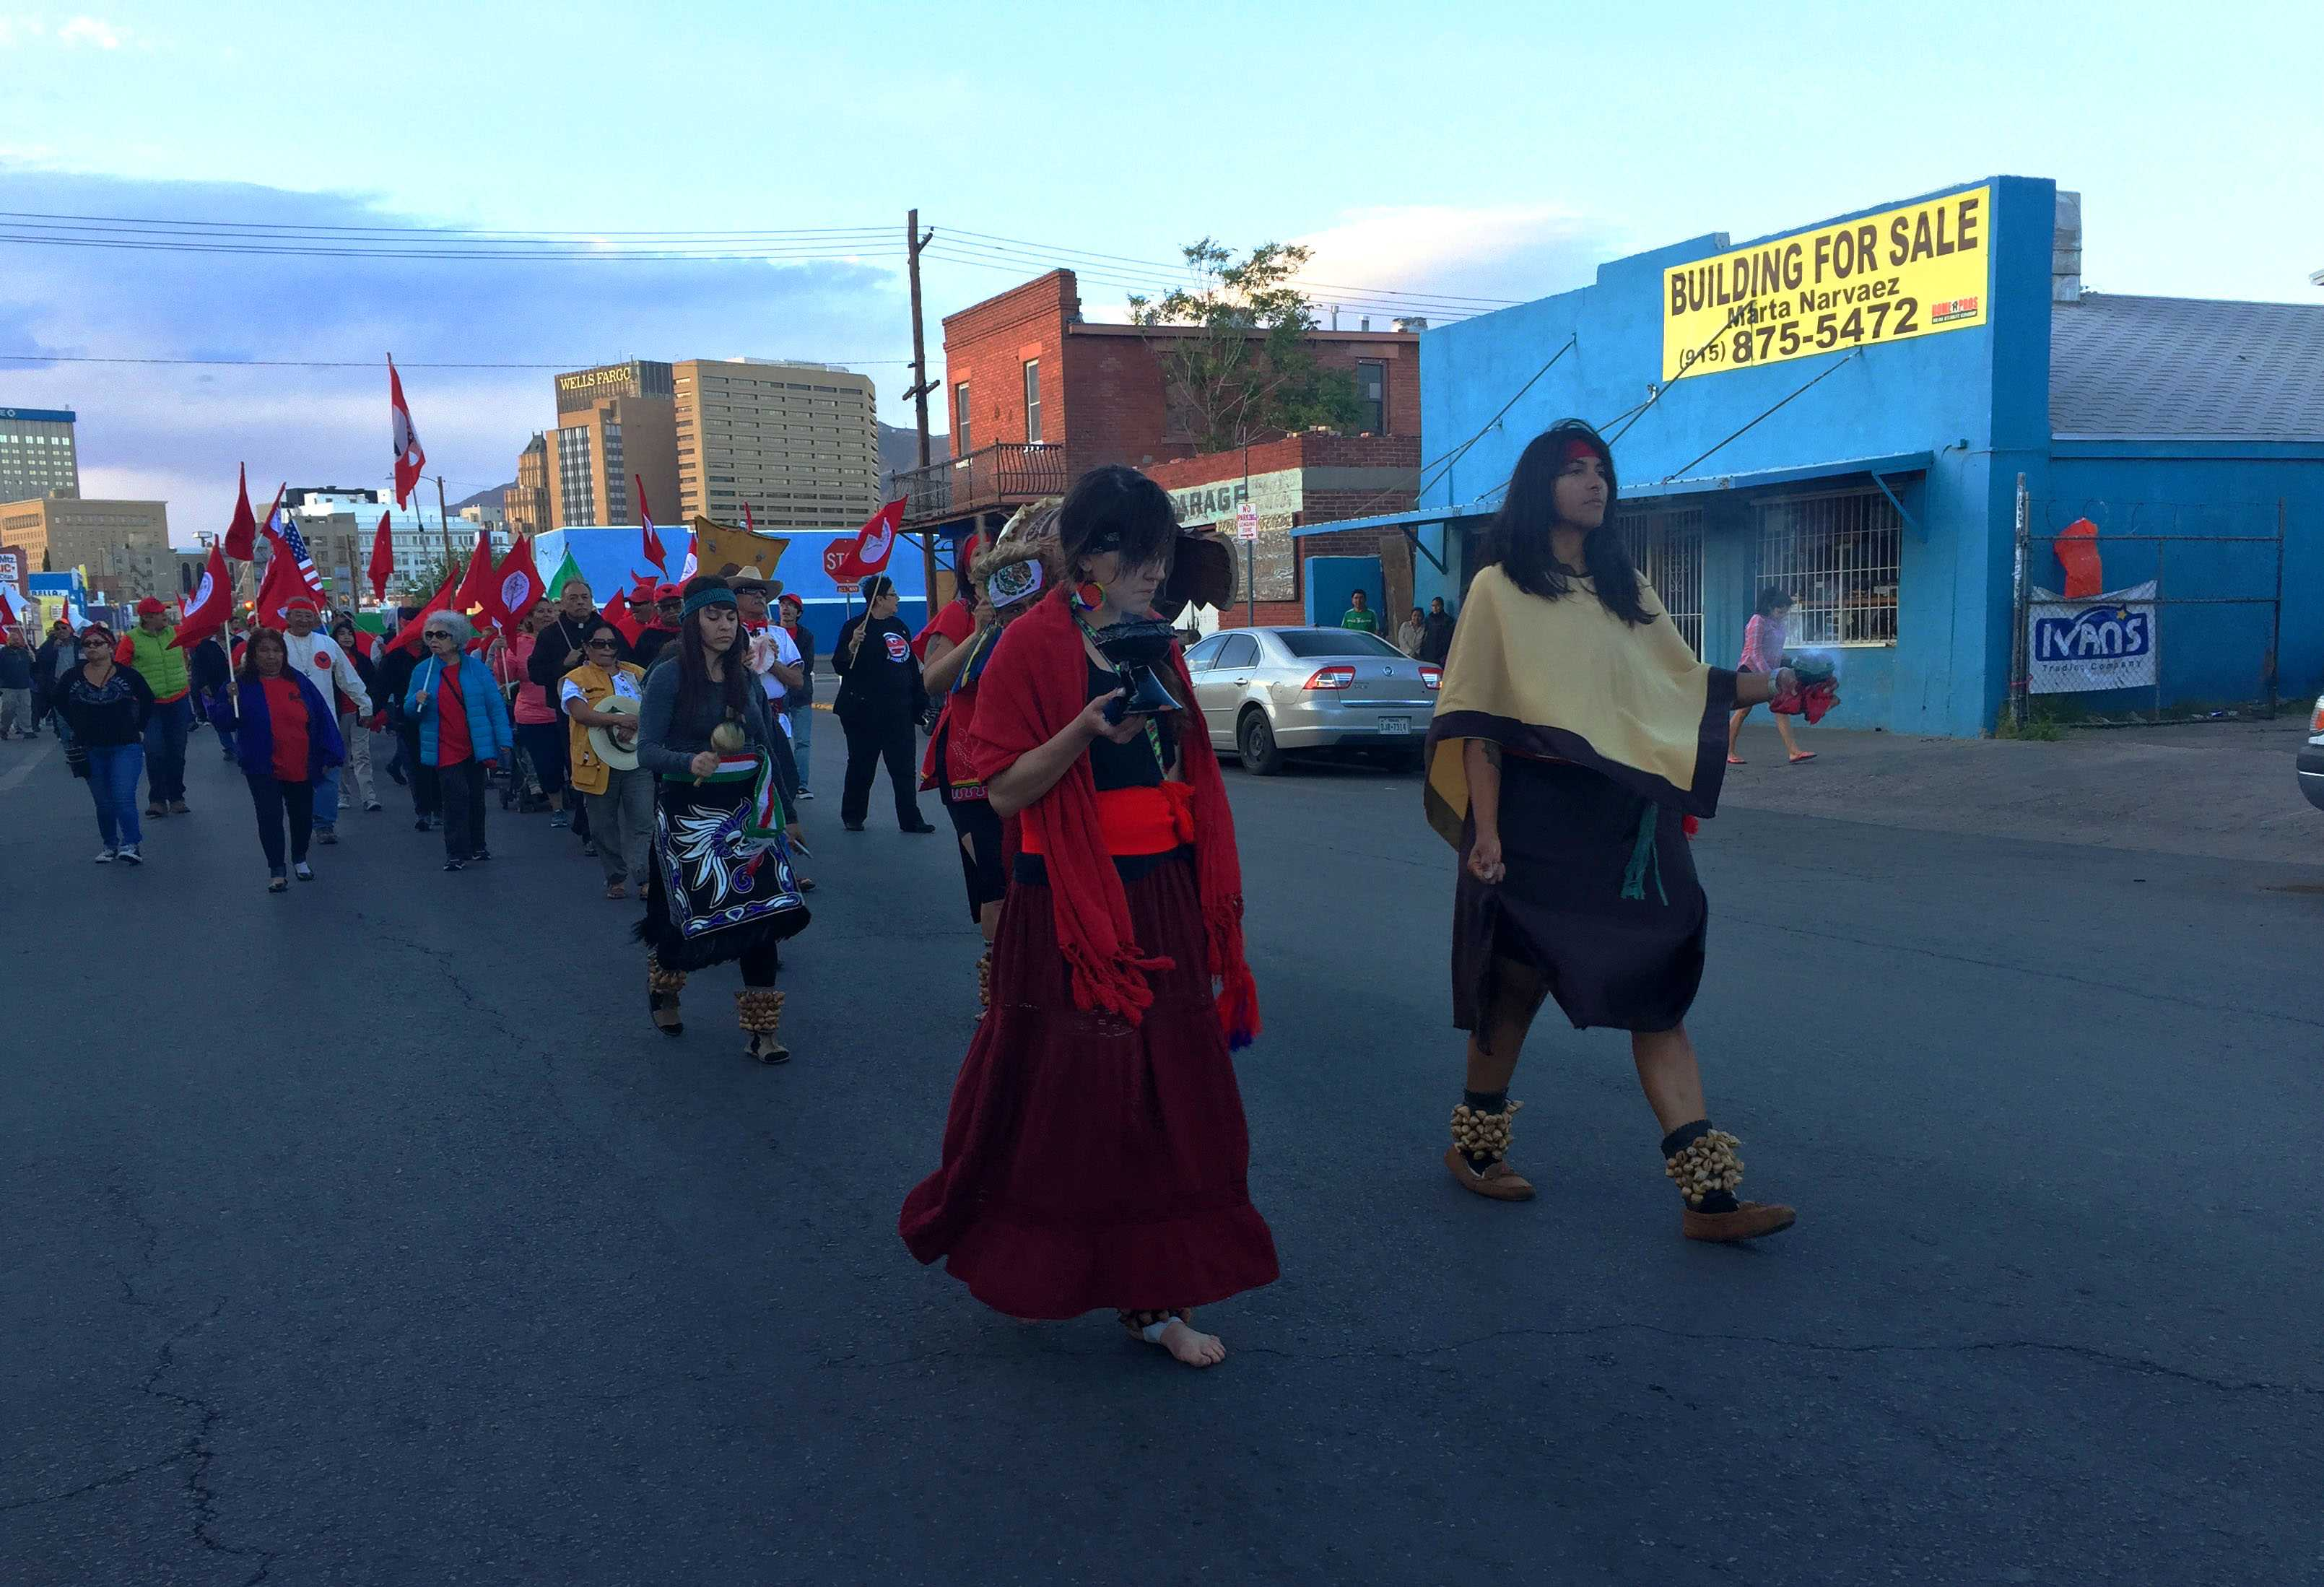 Over+a+hundred+people+participate+in+C%C3%A9sar+Ch%C3%A1vez+Day+march+through+Downtown+El+Paso.